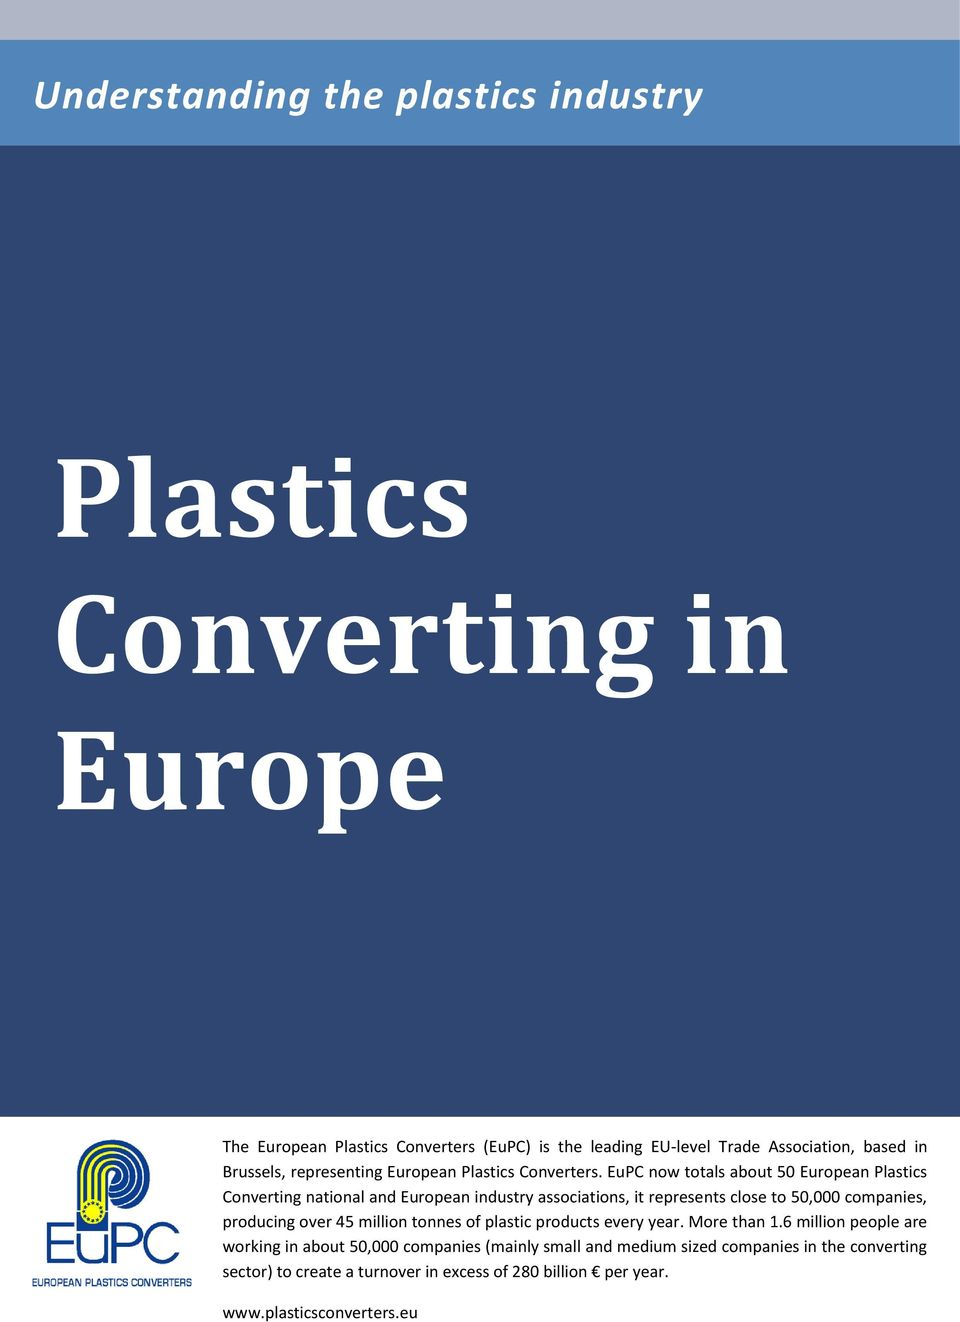 EuPC now totals about 50 European Plastics Converting national and European industry associations, it represents close to 50,000 companies, producing over 45